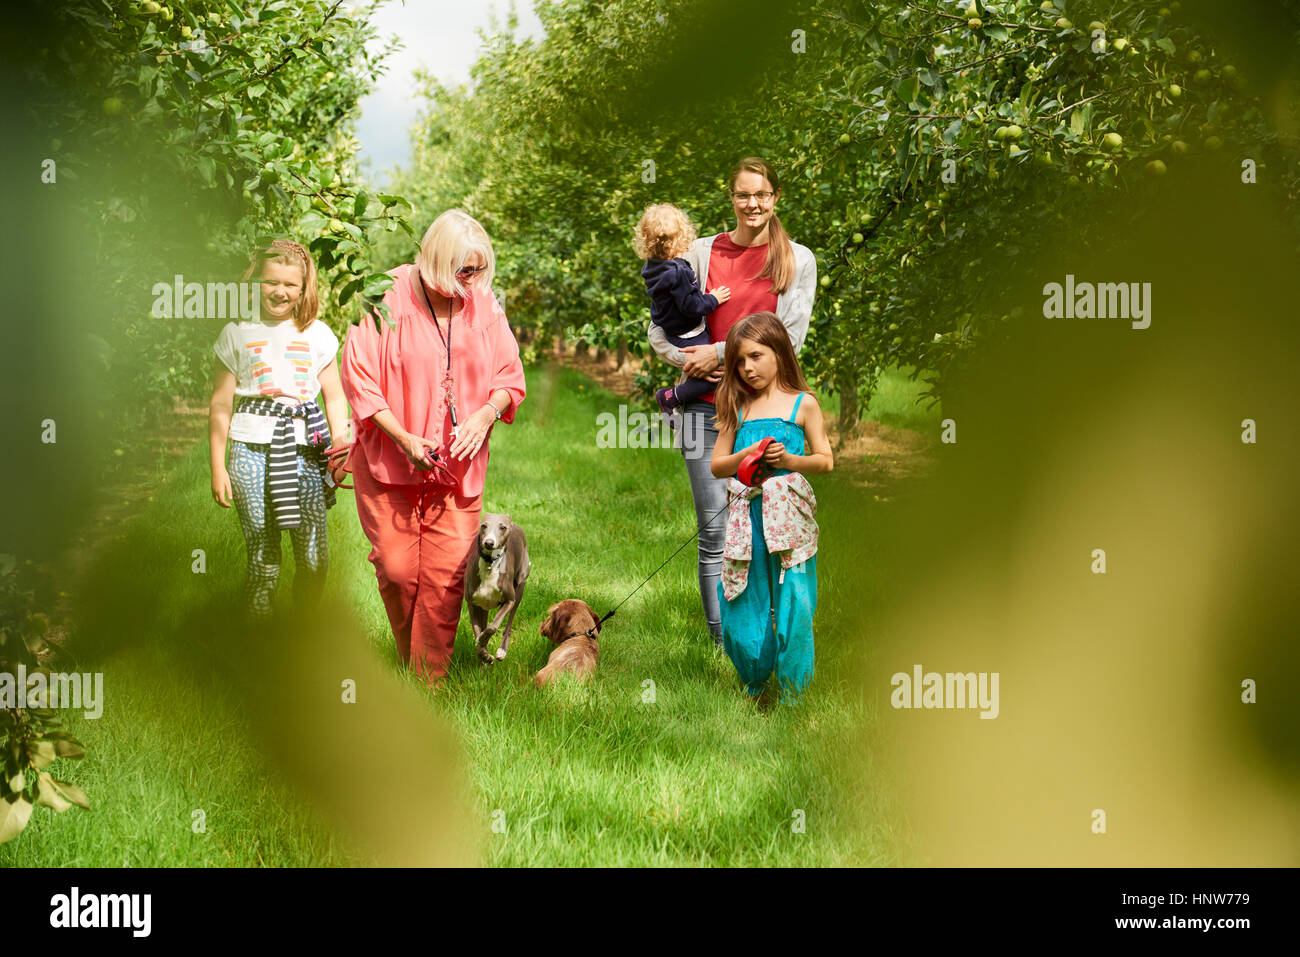 Family walking dog in apple orchard - Stock Image